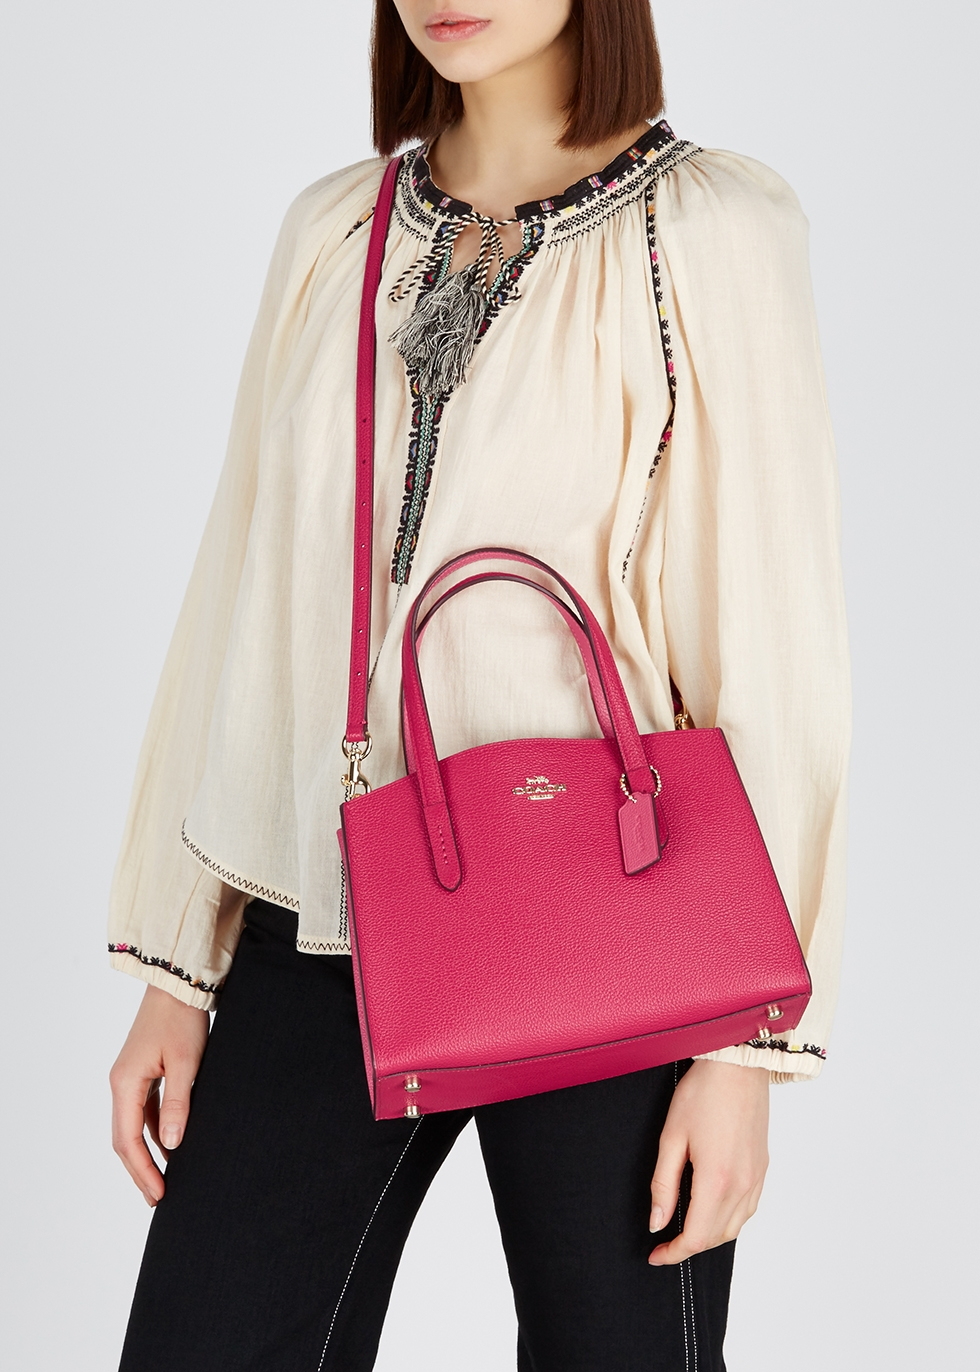 Charlie 28 leather top handle bag - Coach